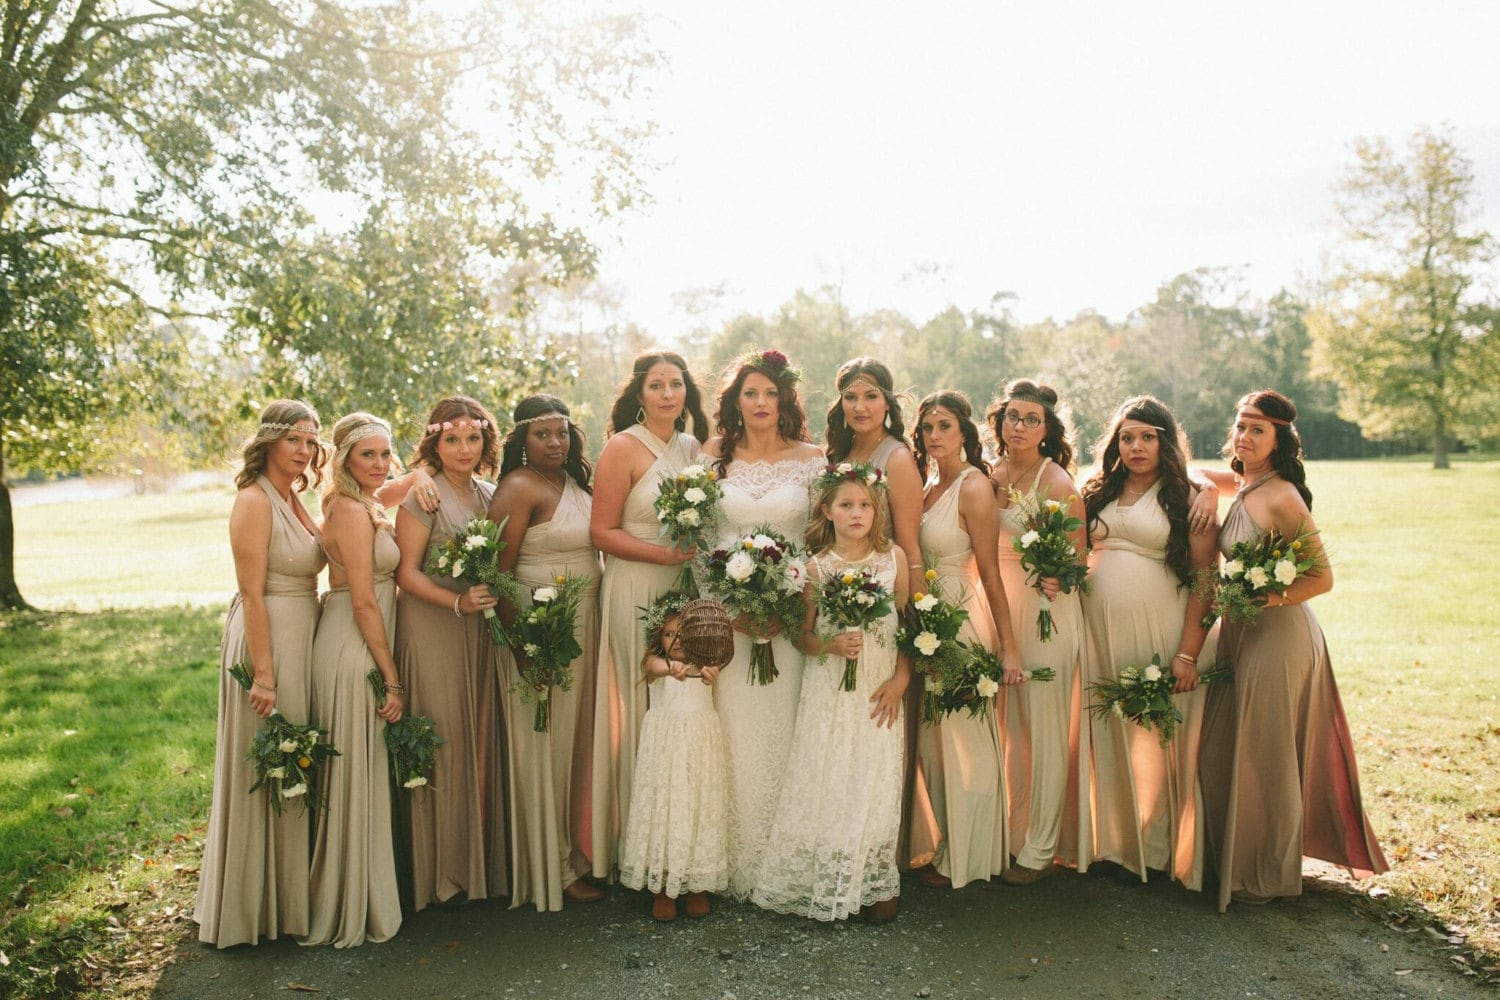 Real Bridesmaids In Beige Bridesmaid Dresses: The Mismatched Bridesmaids Octopus Infinity Convertible Wrap